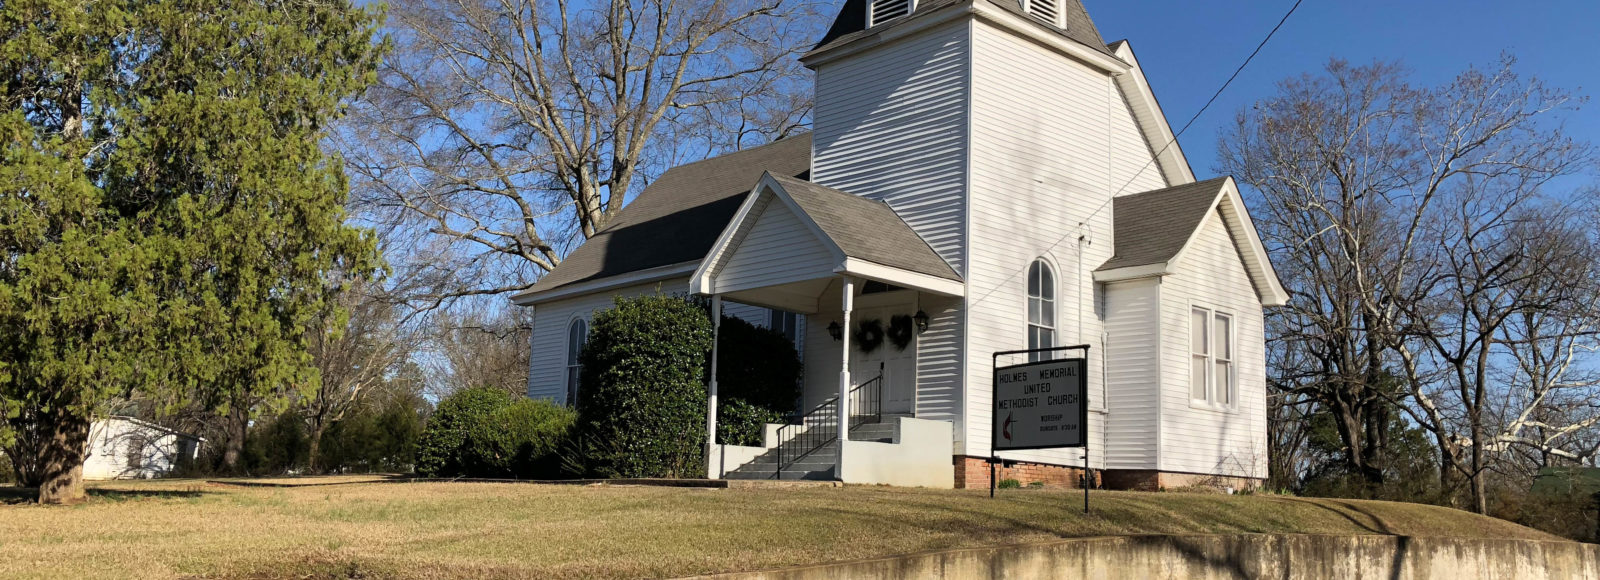 jim west collierville historic church Hickory Valley